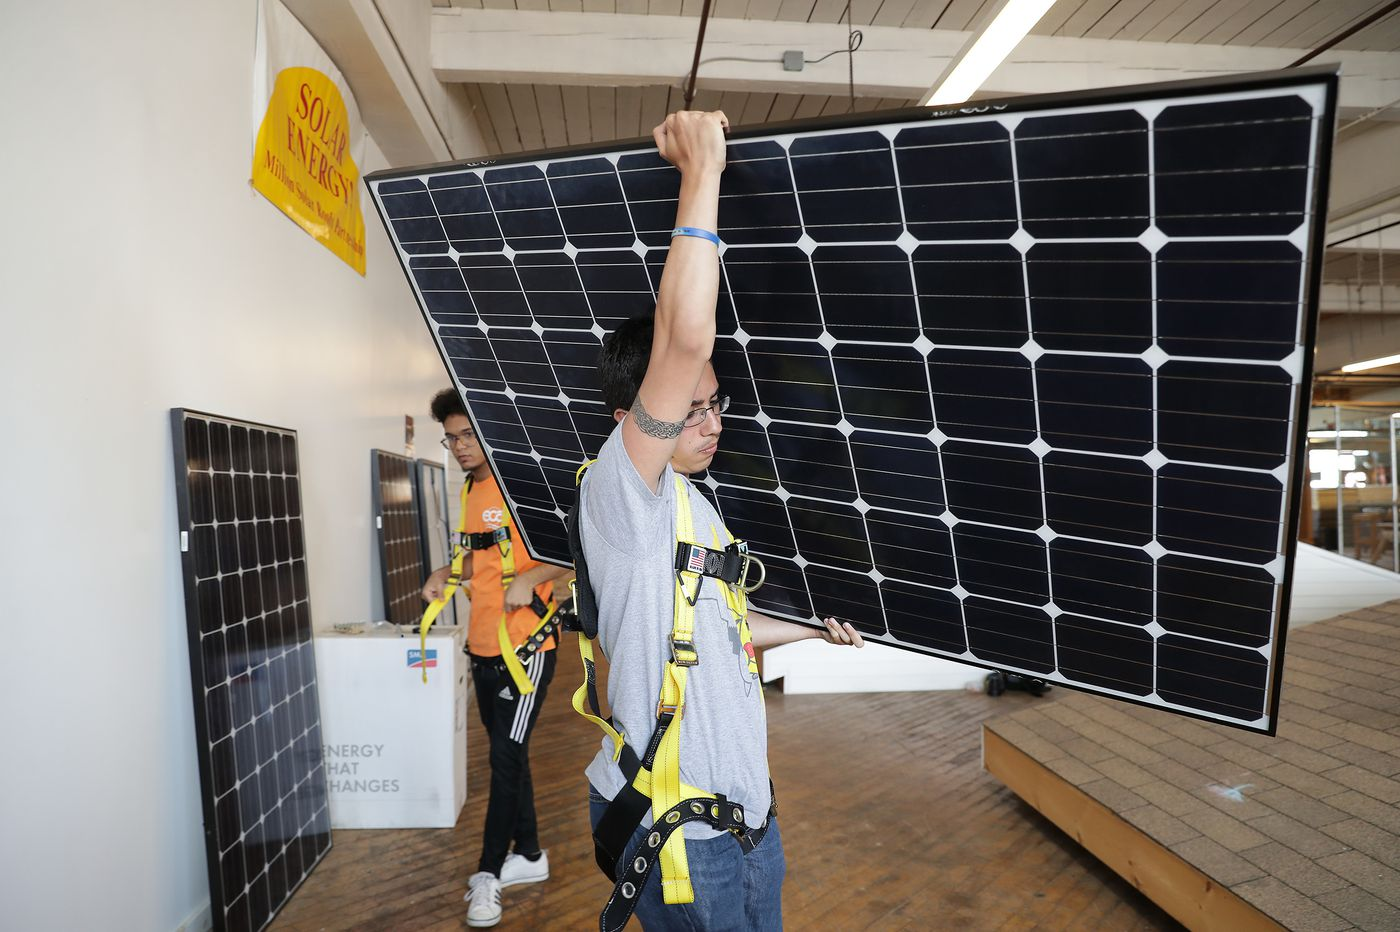 High schoolers get paid to learn solar in Philly. It's about to become a program of study.